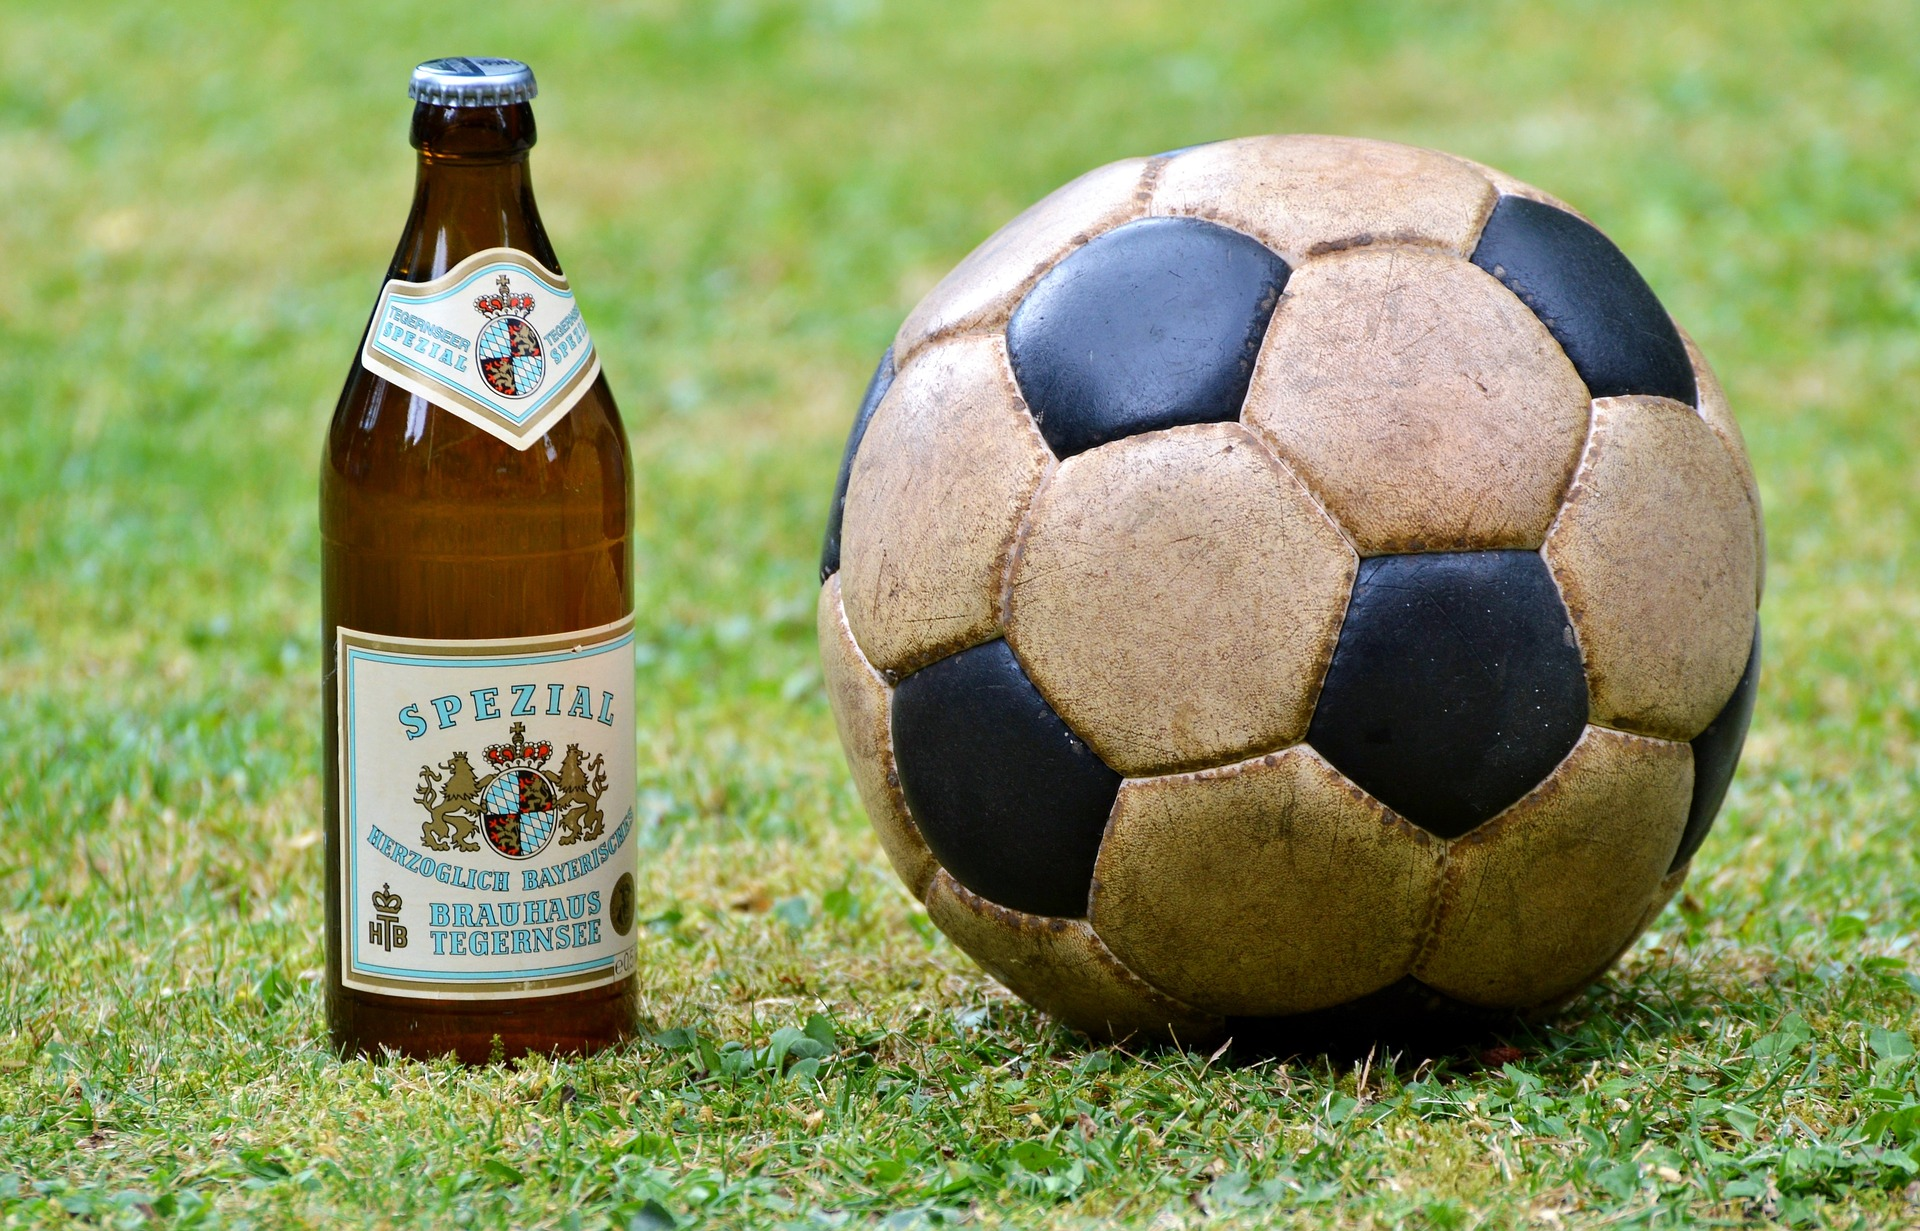 Non-Alcoholic Beer Is Brewing The Latest Sports Drink Trend: Performance Beer